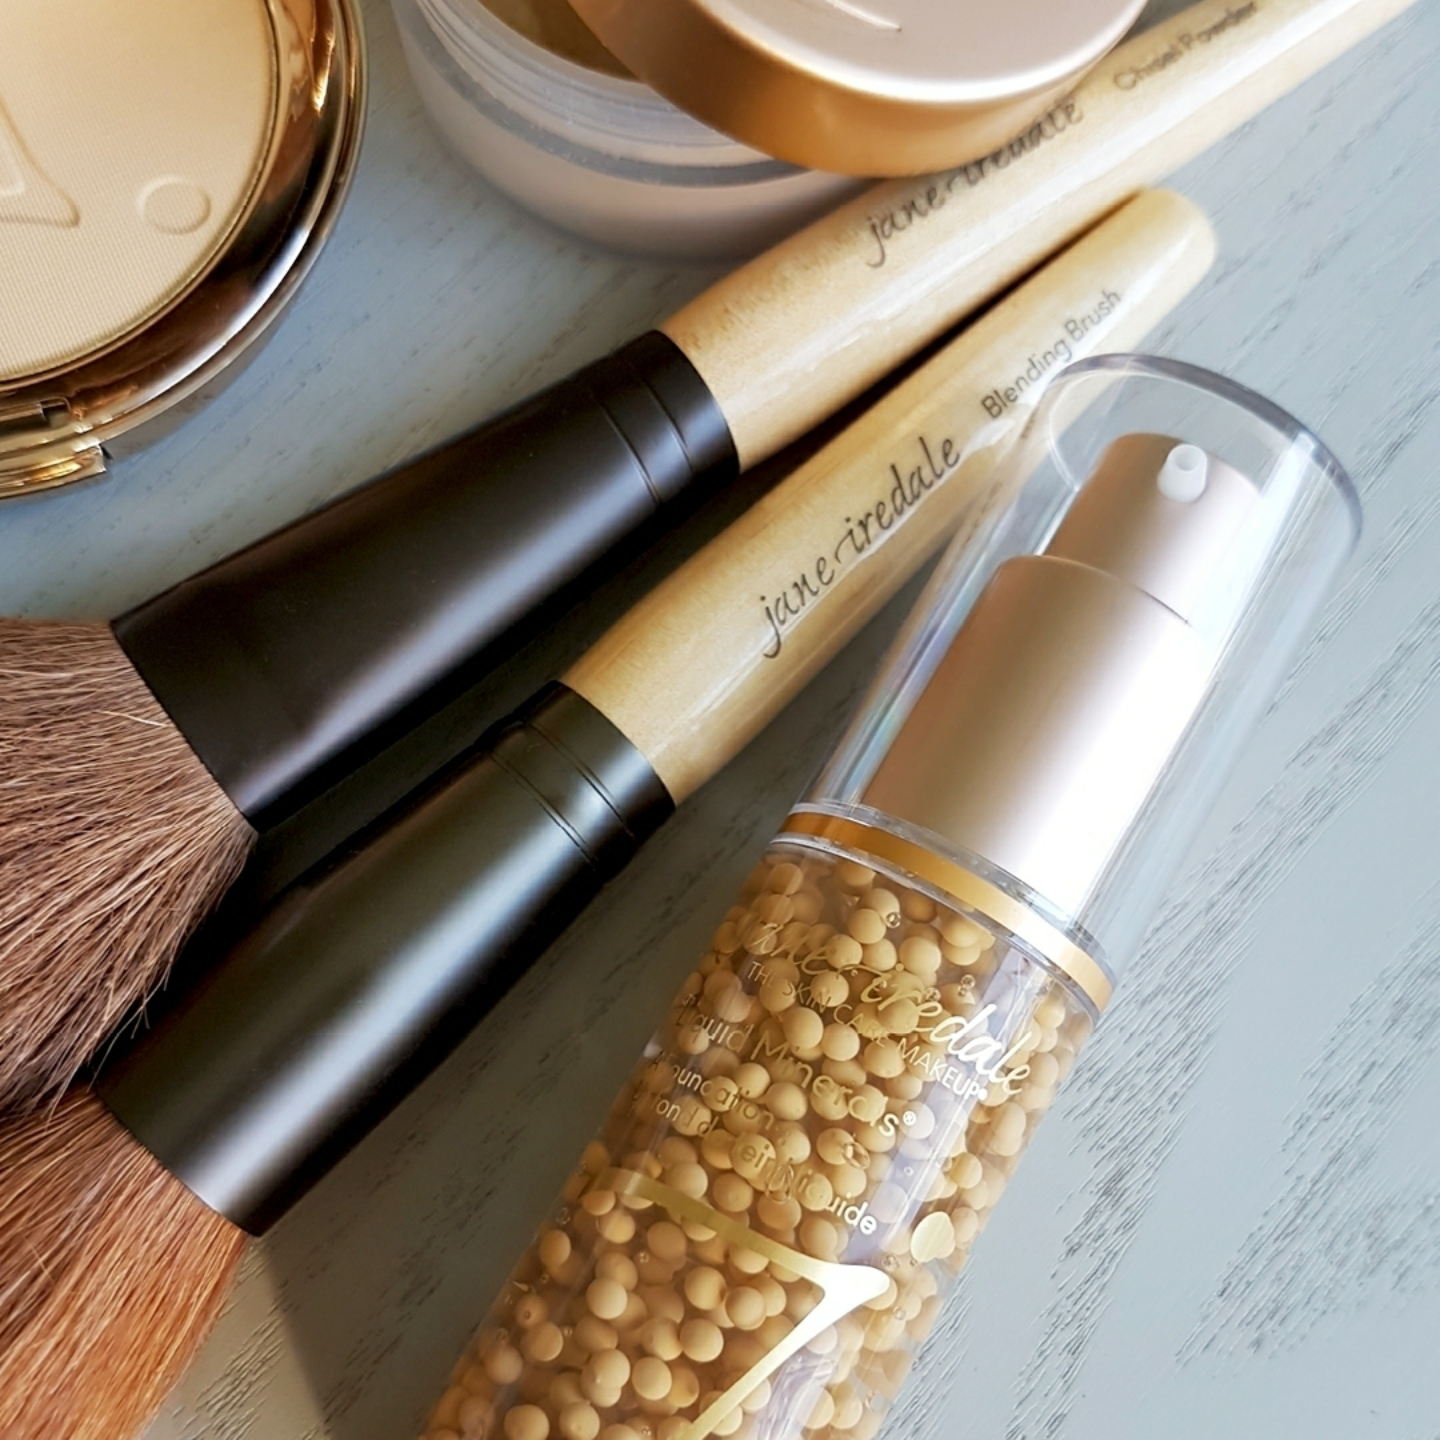 Article on Best Foundation for Sensitive Skin Makeup